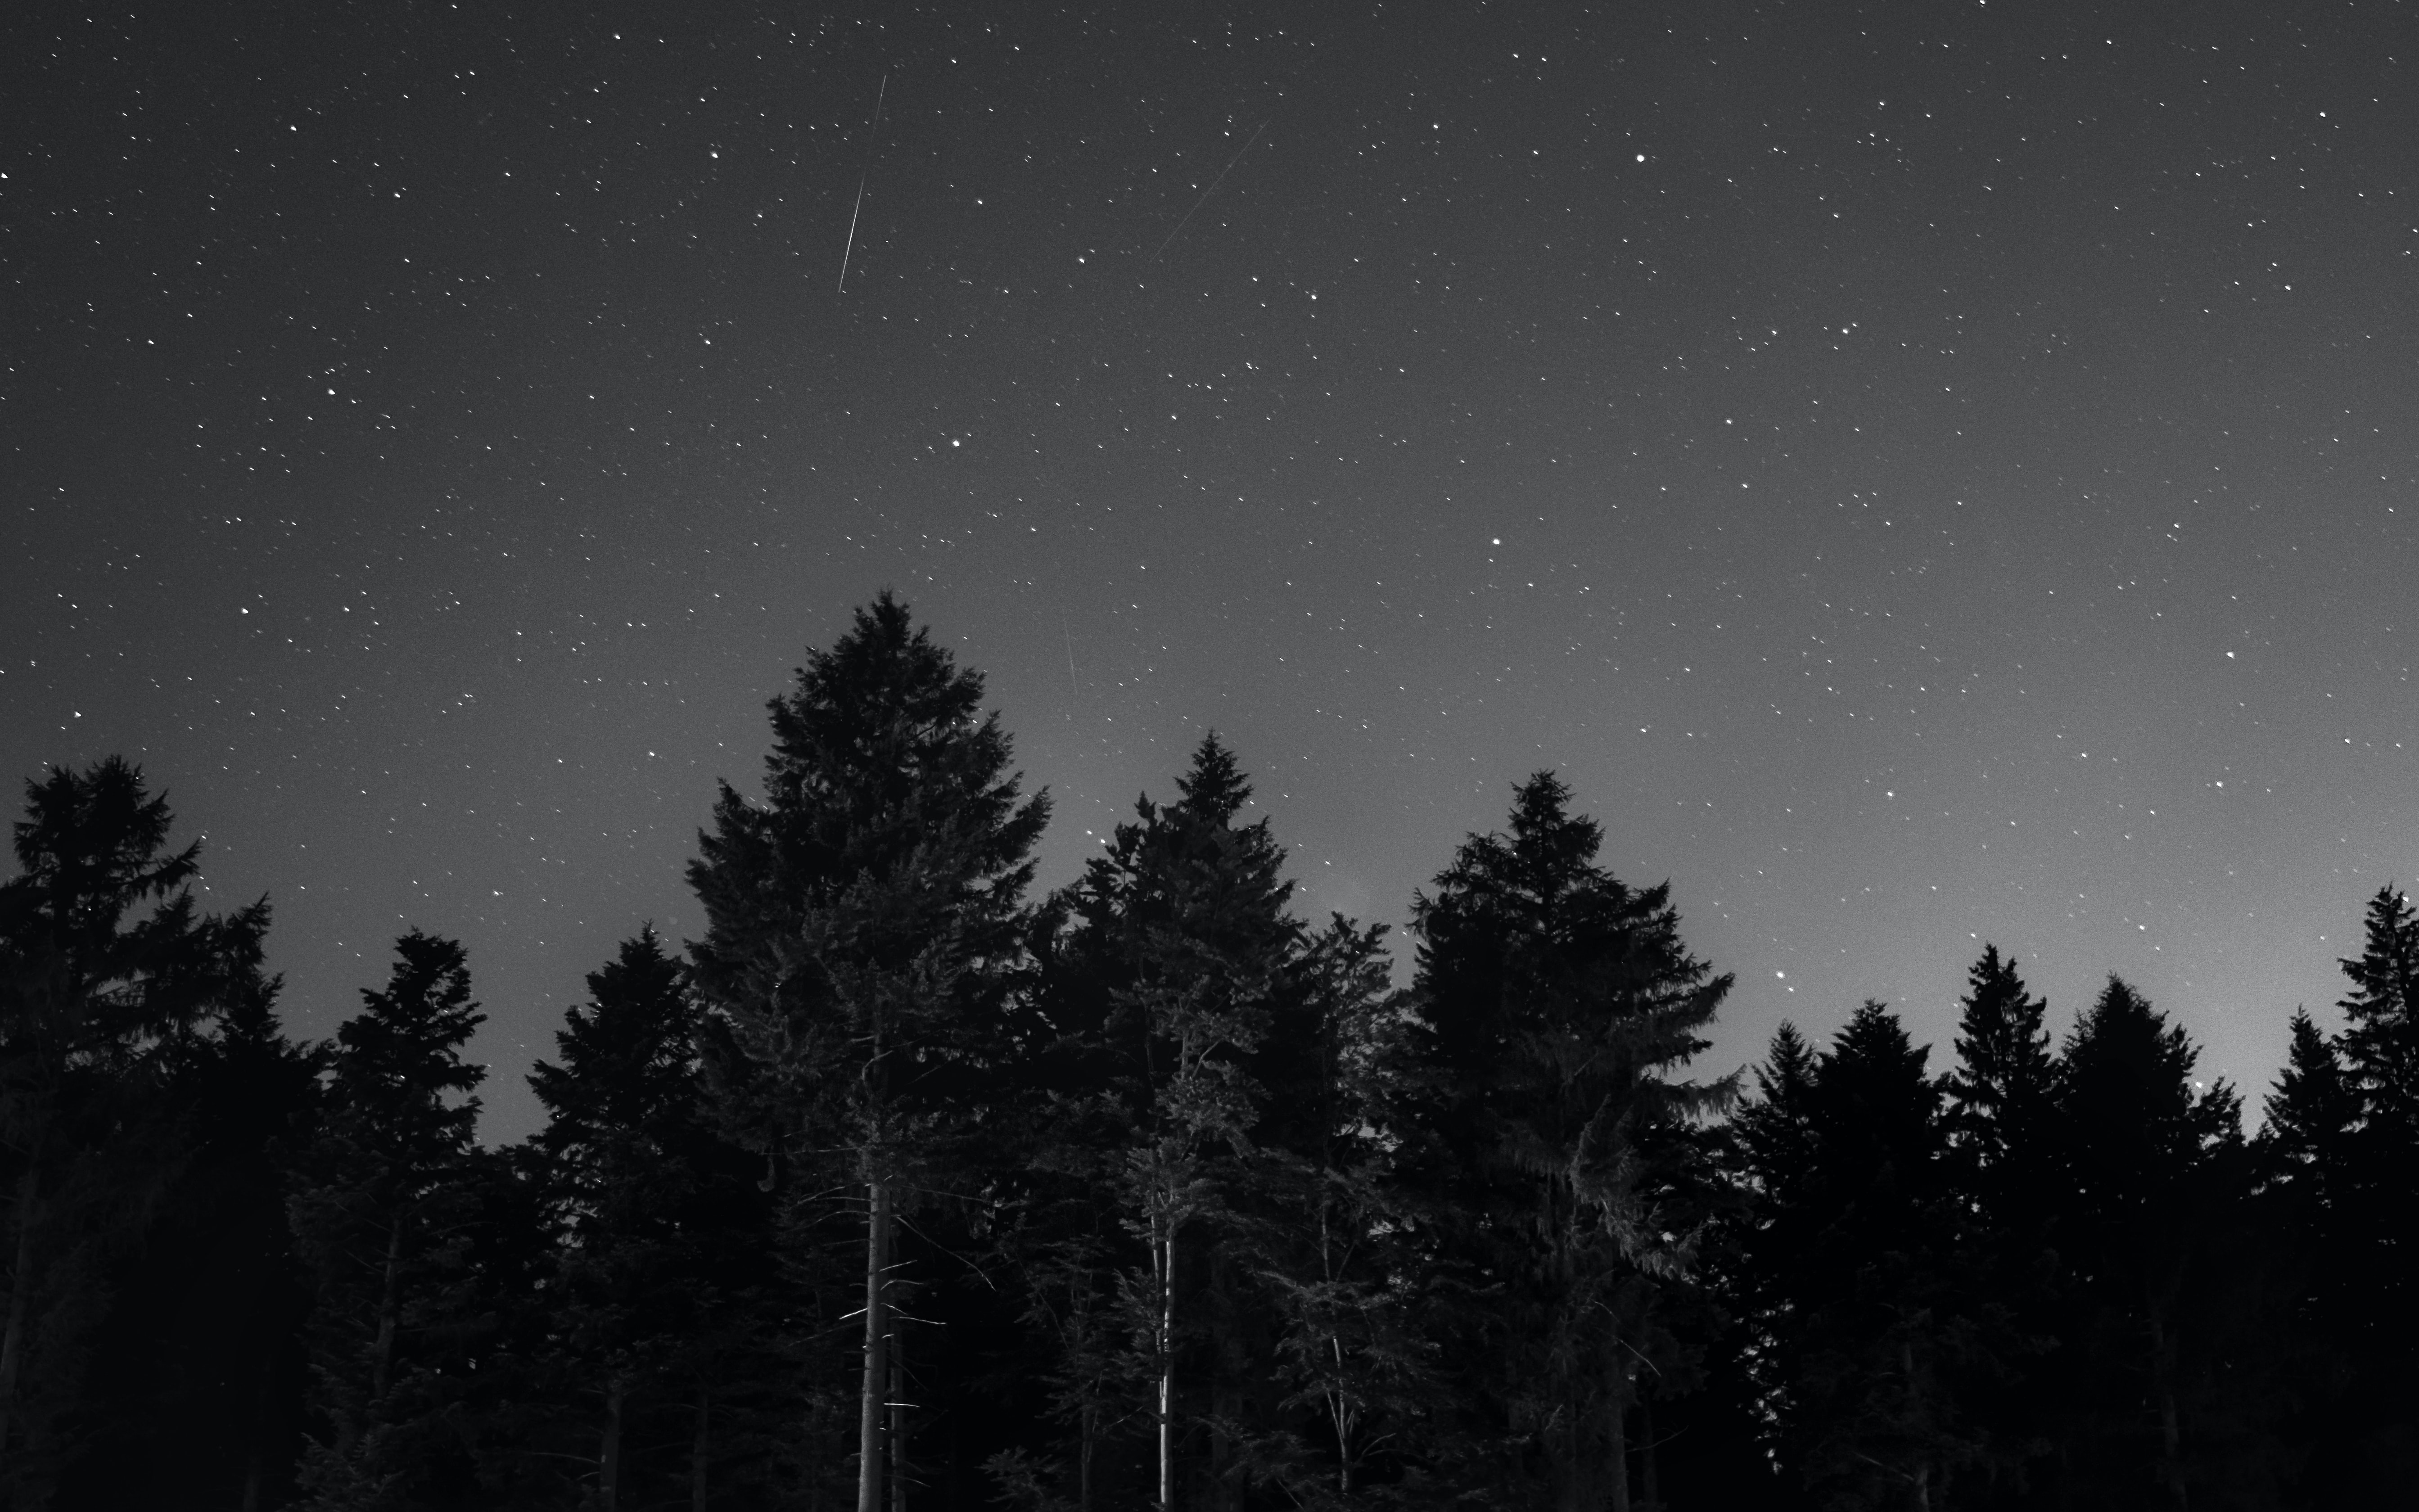 A black-and-white shot of a shooting star on the night sky over an evergreen forest